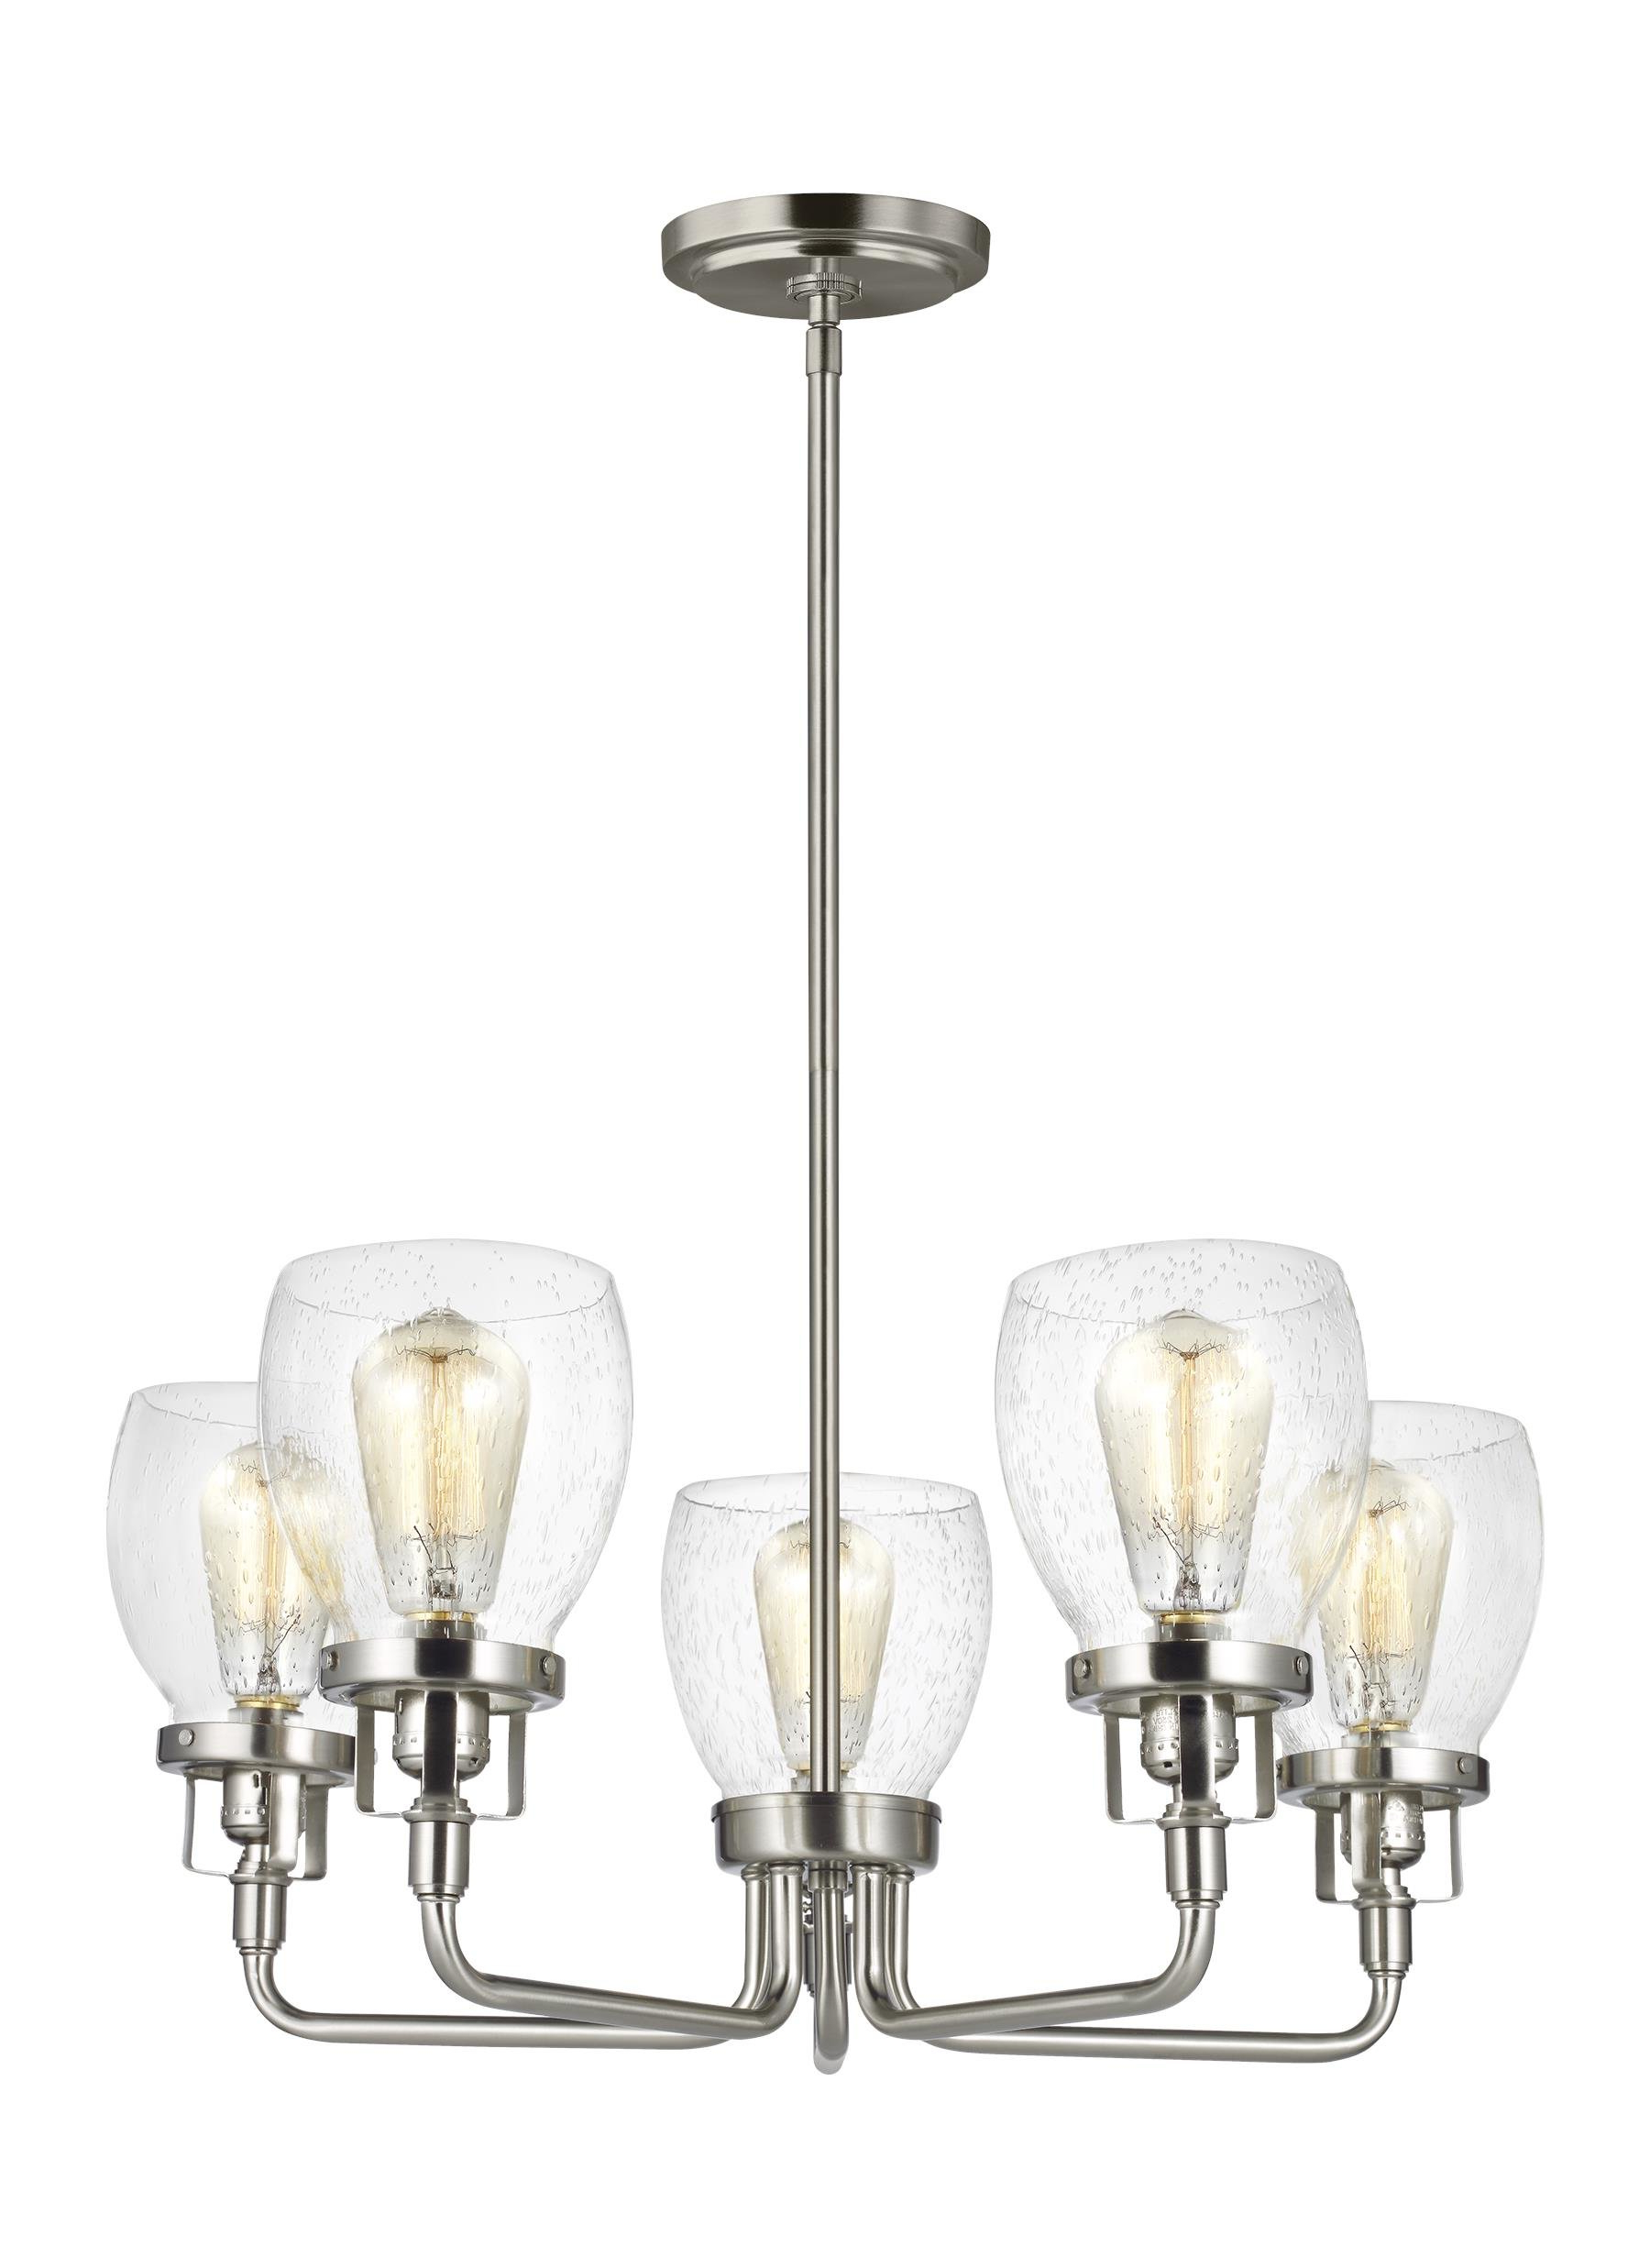 Akash Industrial Vintage 1 Light Geometric Pendants With Regard To 2019 Vintage Industrial Lighting (View 5 of 25)